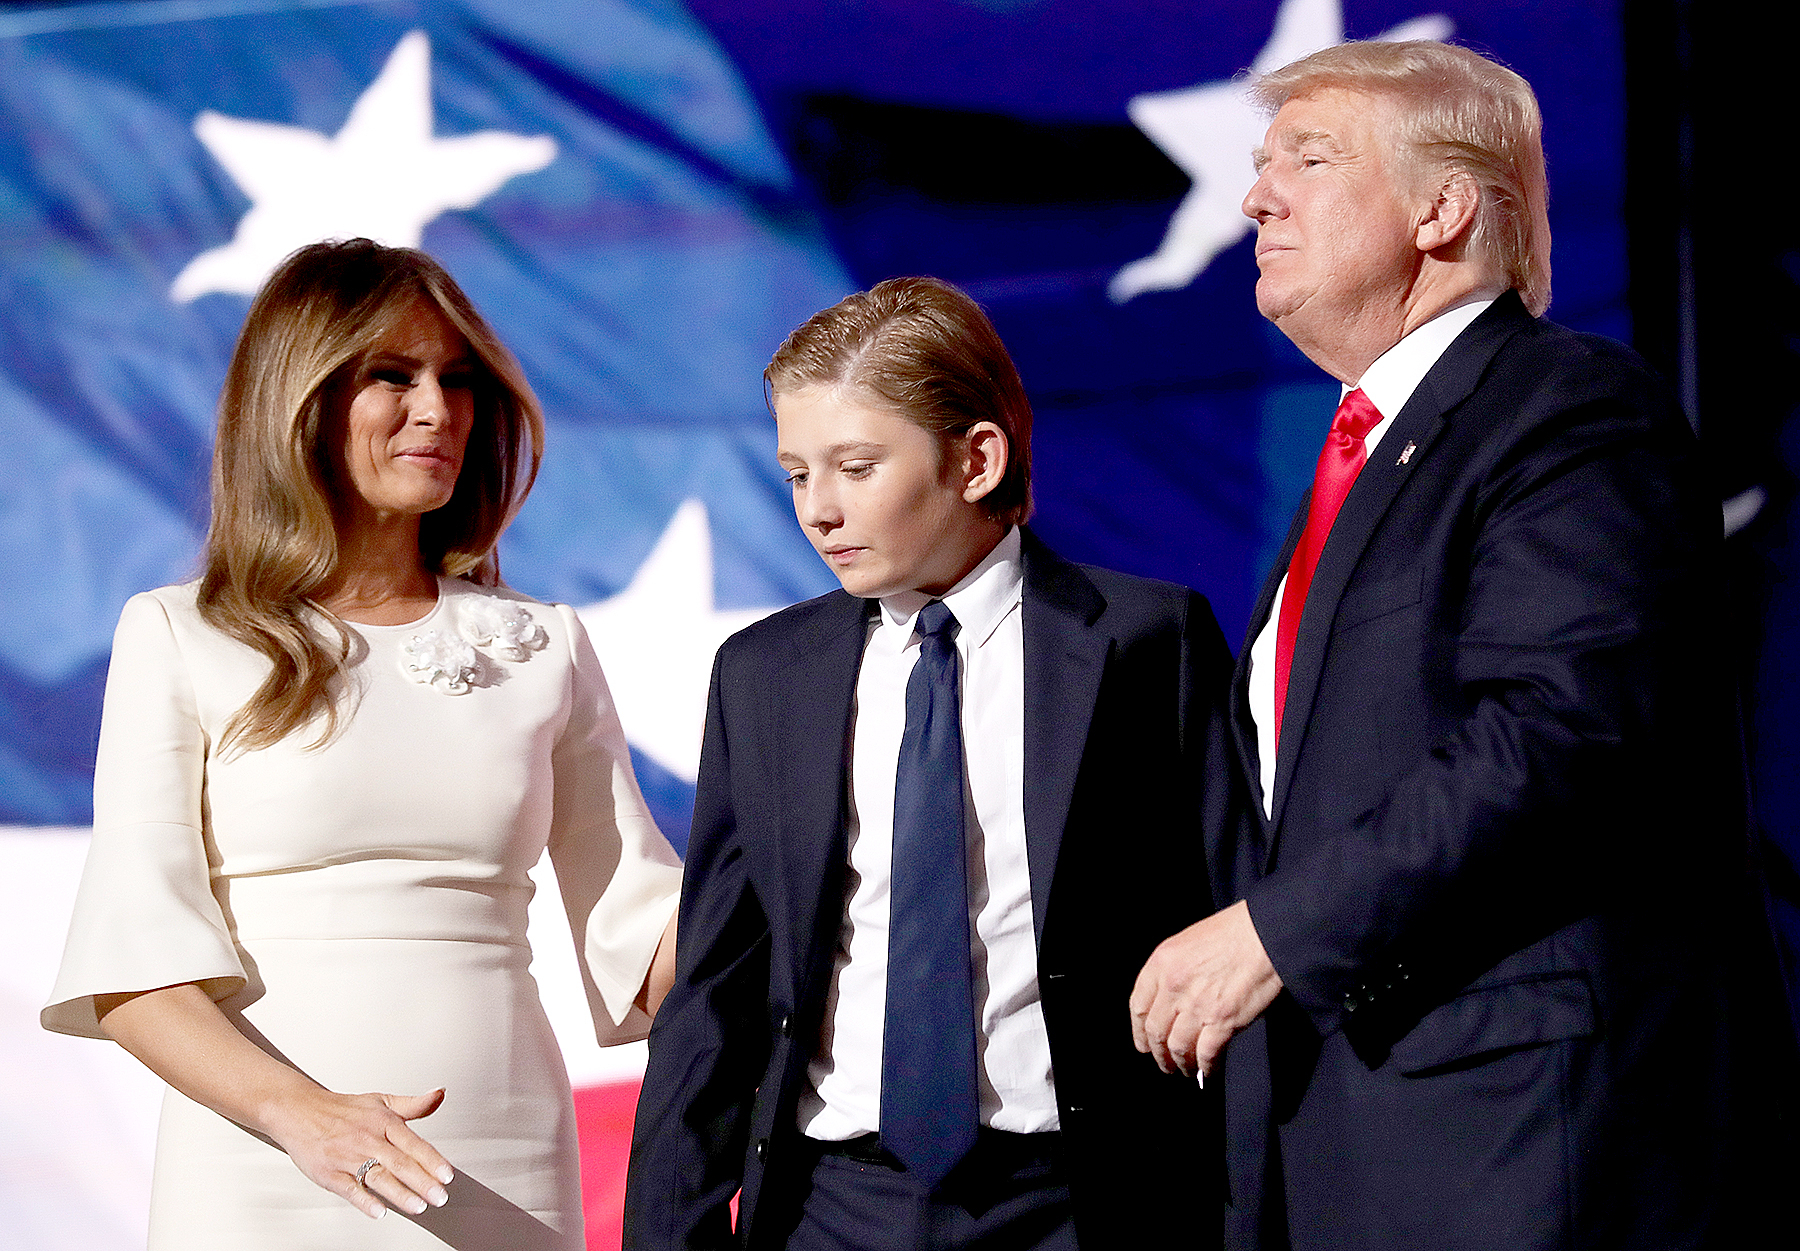 Republican presidential candidate Donald Trump (R) embraces his son Barron Trump, as his wife Melania Trump looks on at the end of the Republican National Convention on July 21, 2016 at the Quicken Loans Arena in Cleveland, Ohio.